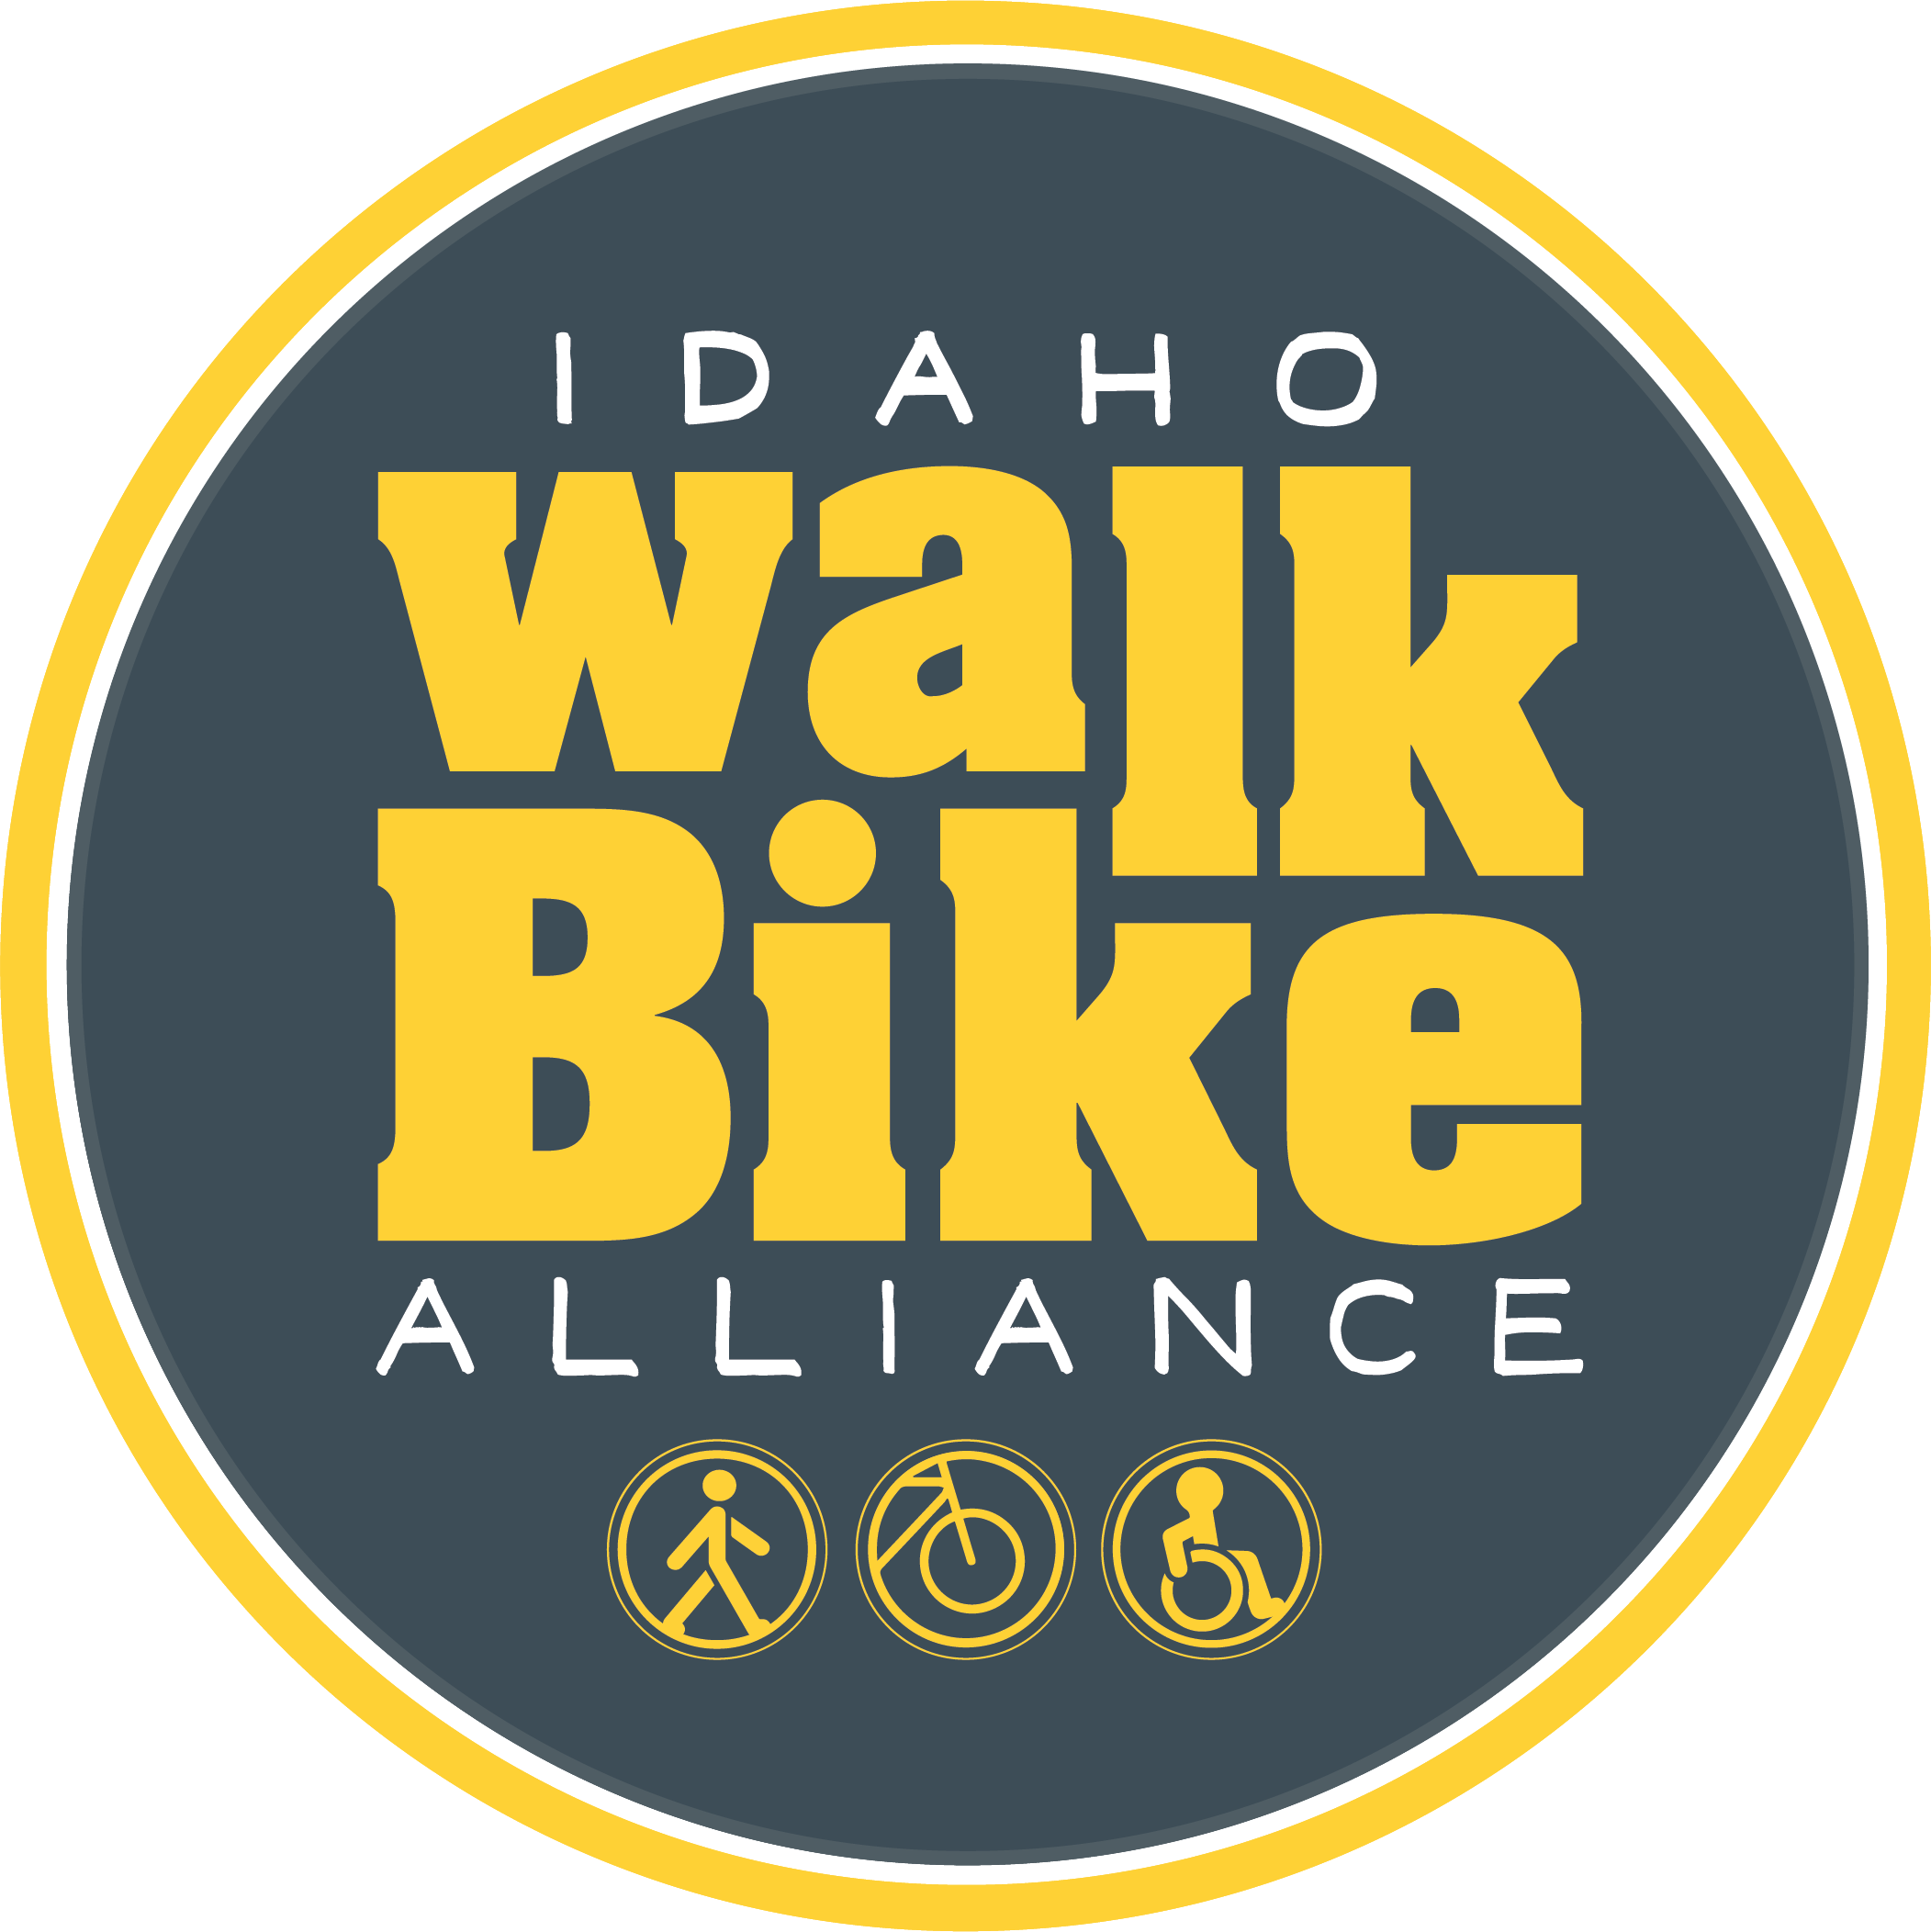 Idaho Walk Bike Alliance